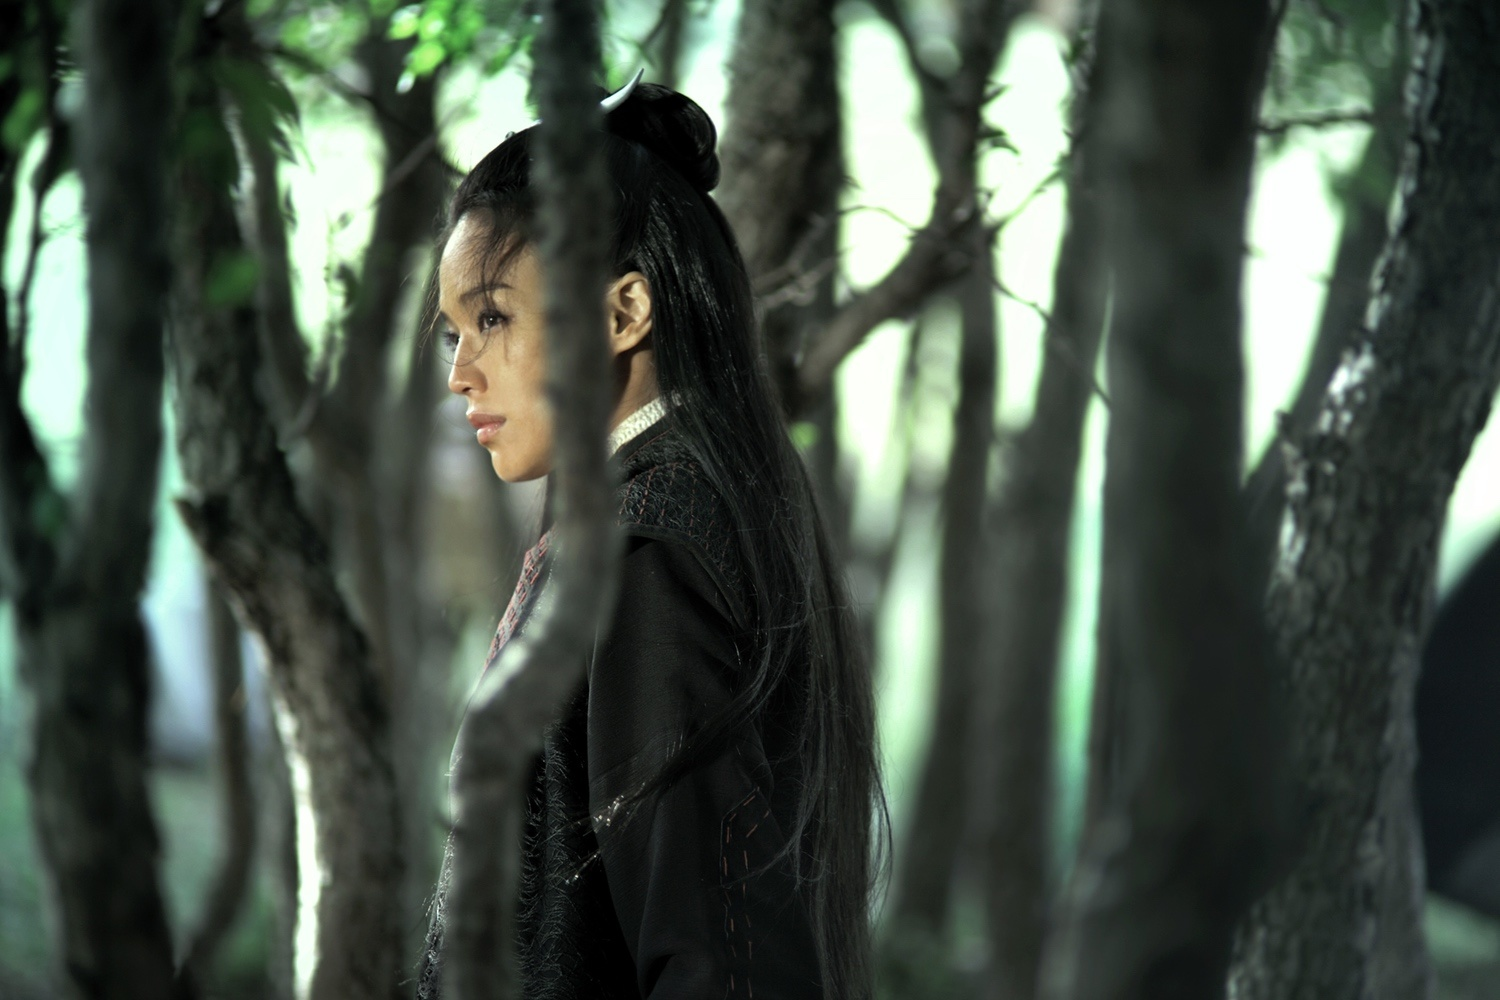 Wuxia Meets Art House Cinema in The Assassin